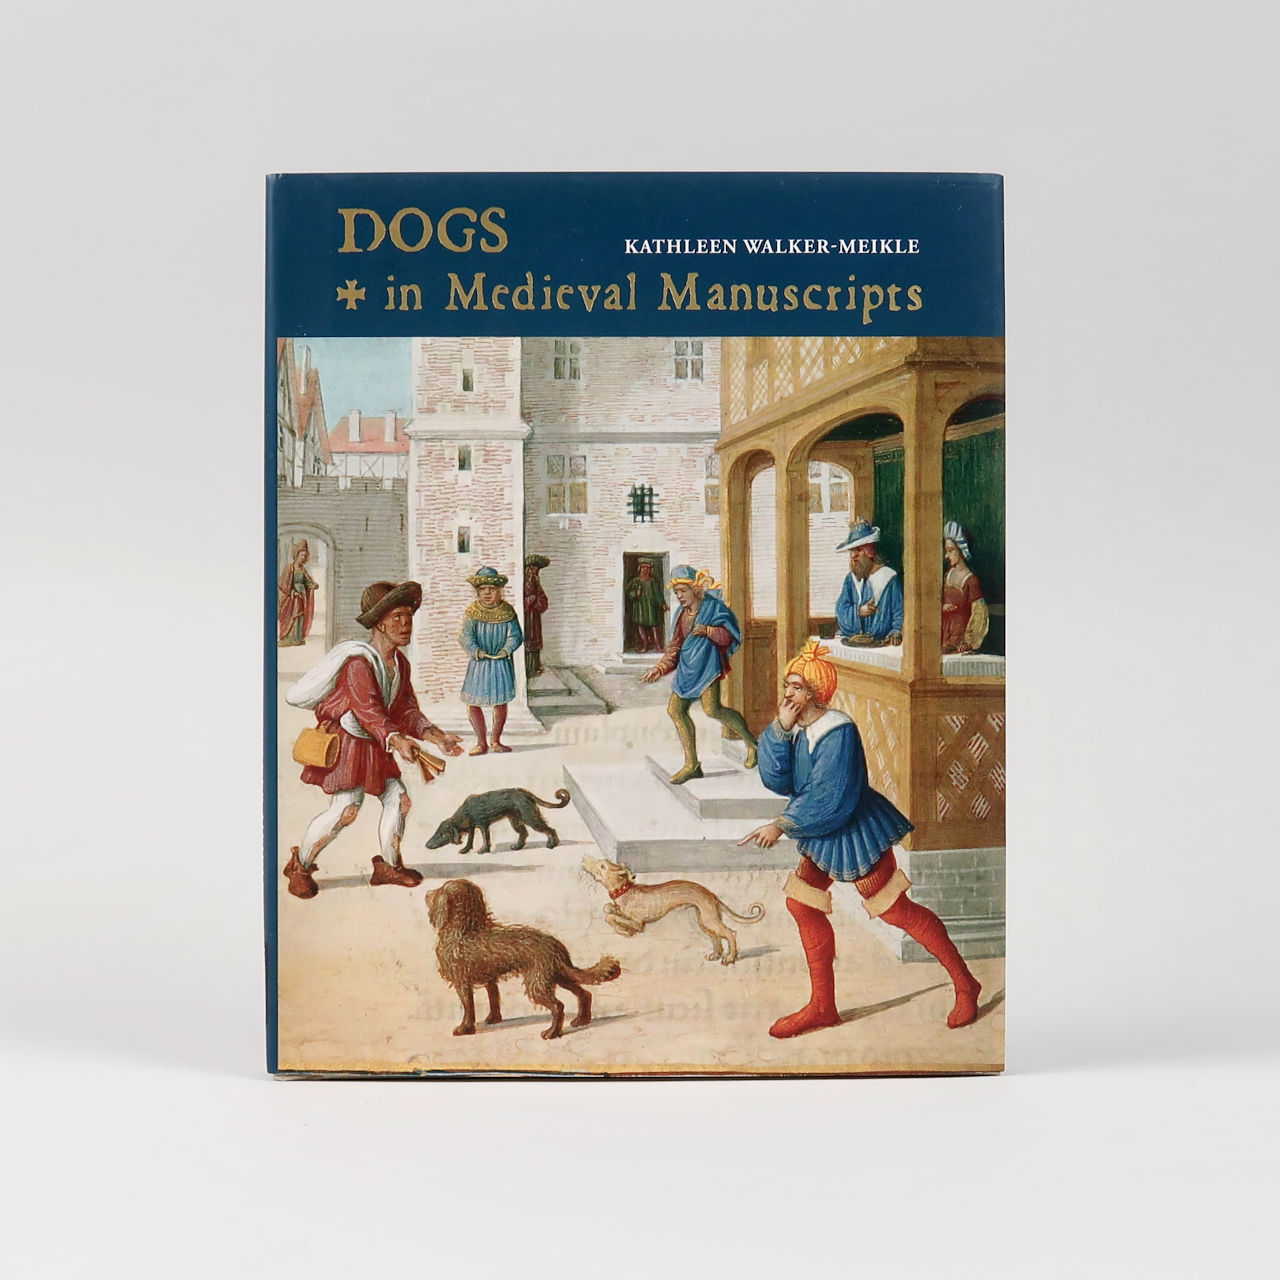 Dogs in Medieval Manuscripts - Kathleen Walker-Meikle